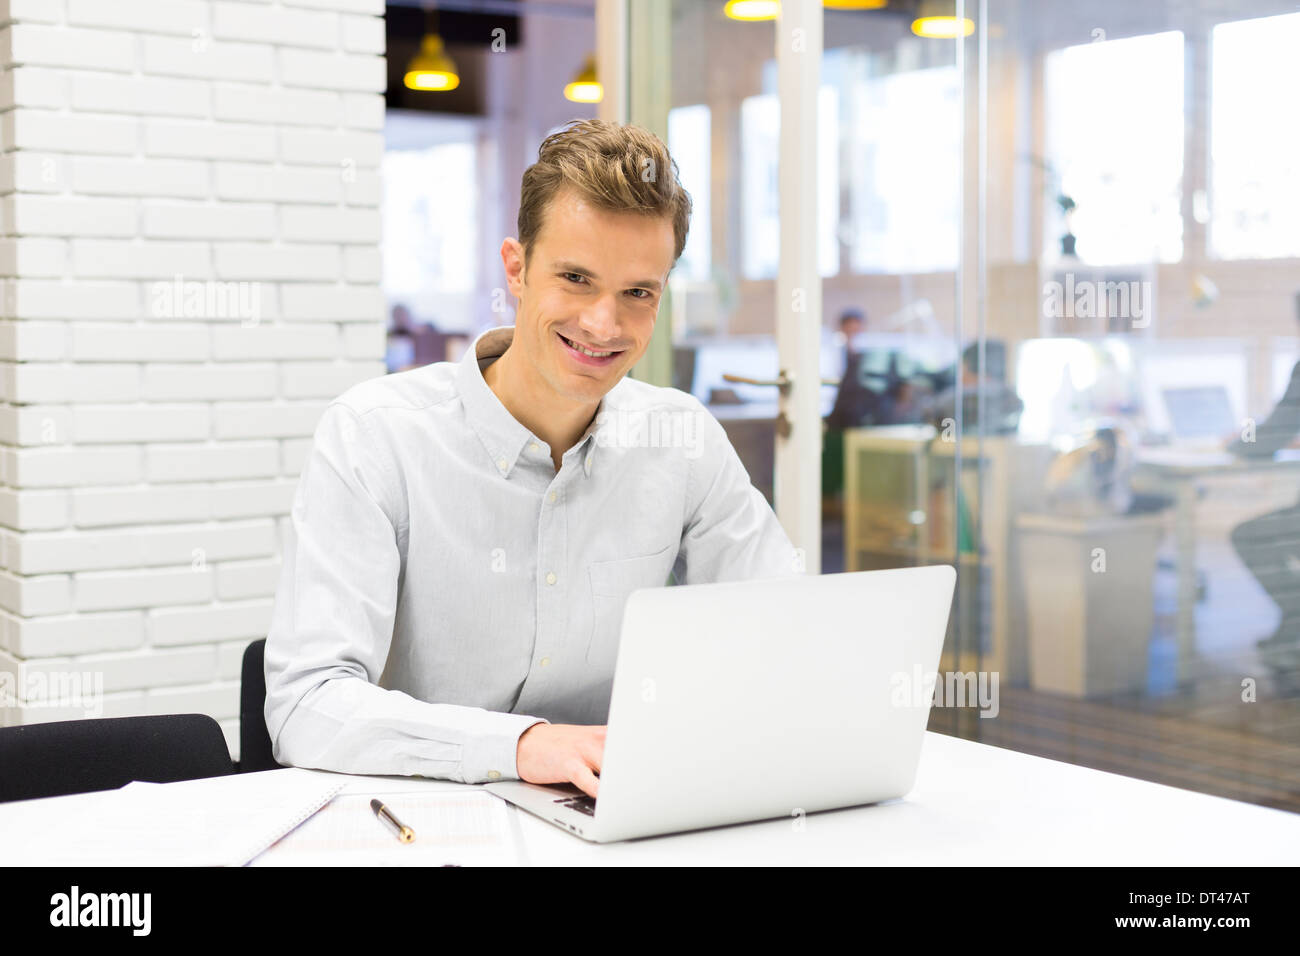 Male business computer desk looking camera Stock Photo